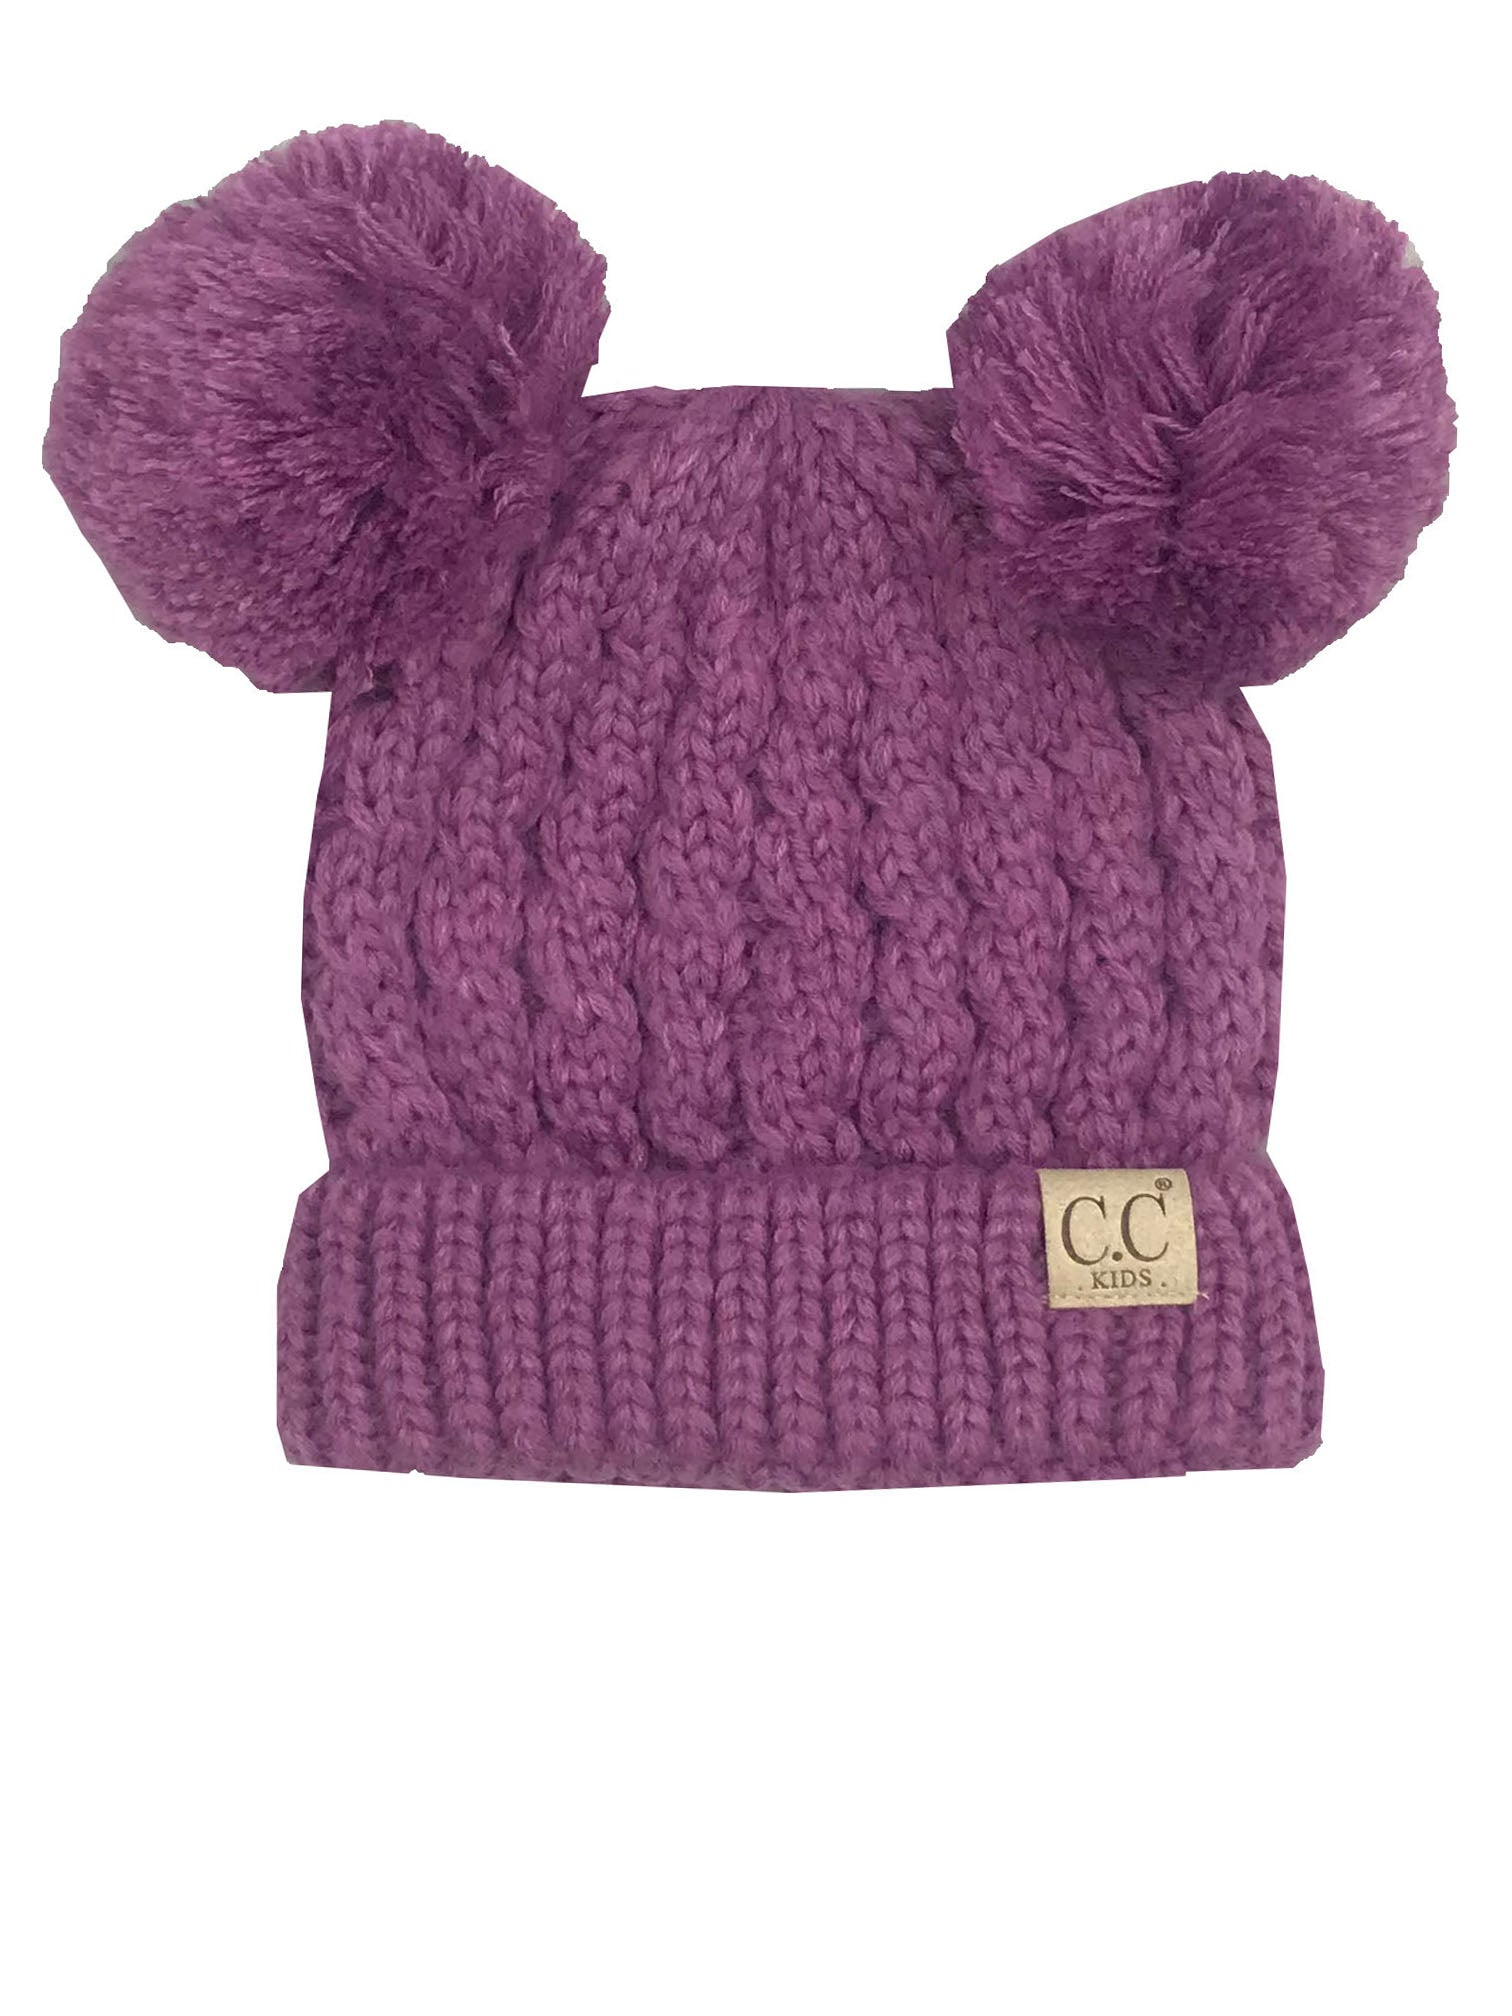 C.C Kid-24 New Lavender Youth Beanie